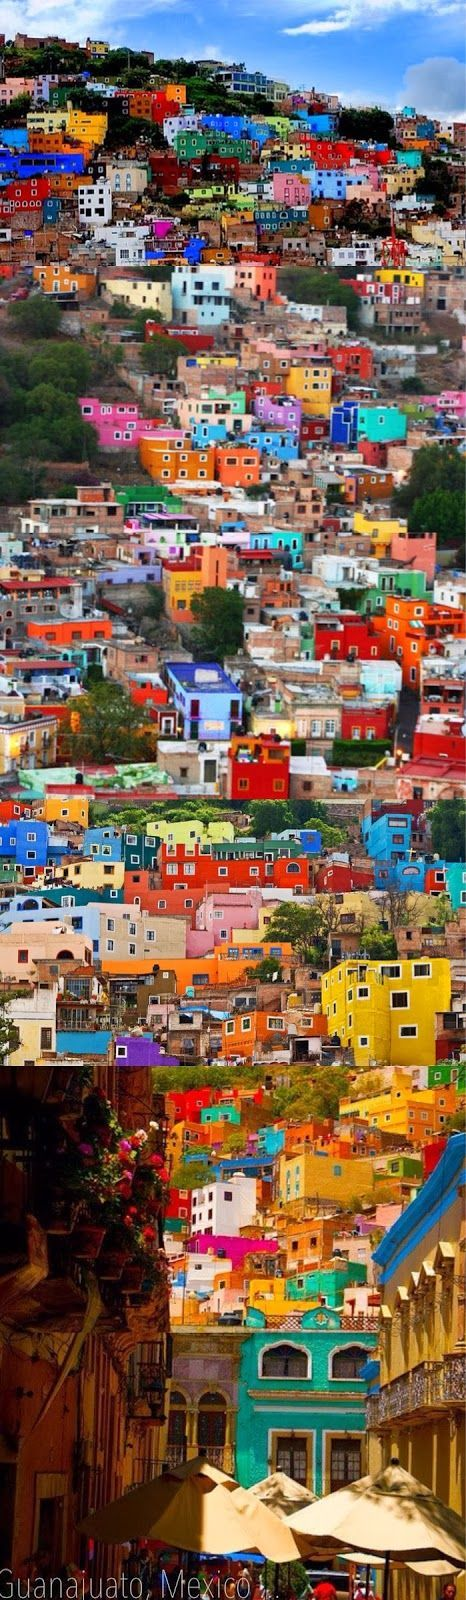 105 of the World's Most Colourful Buildings